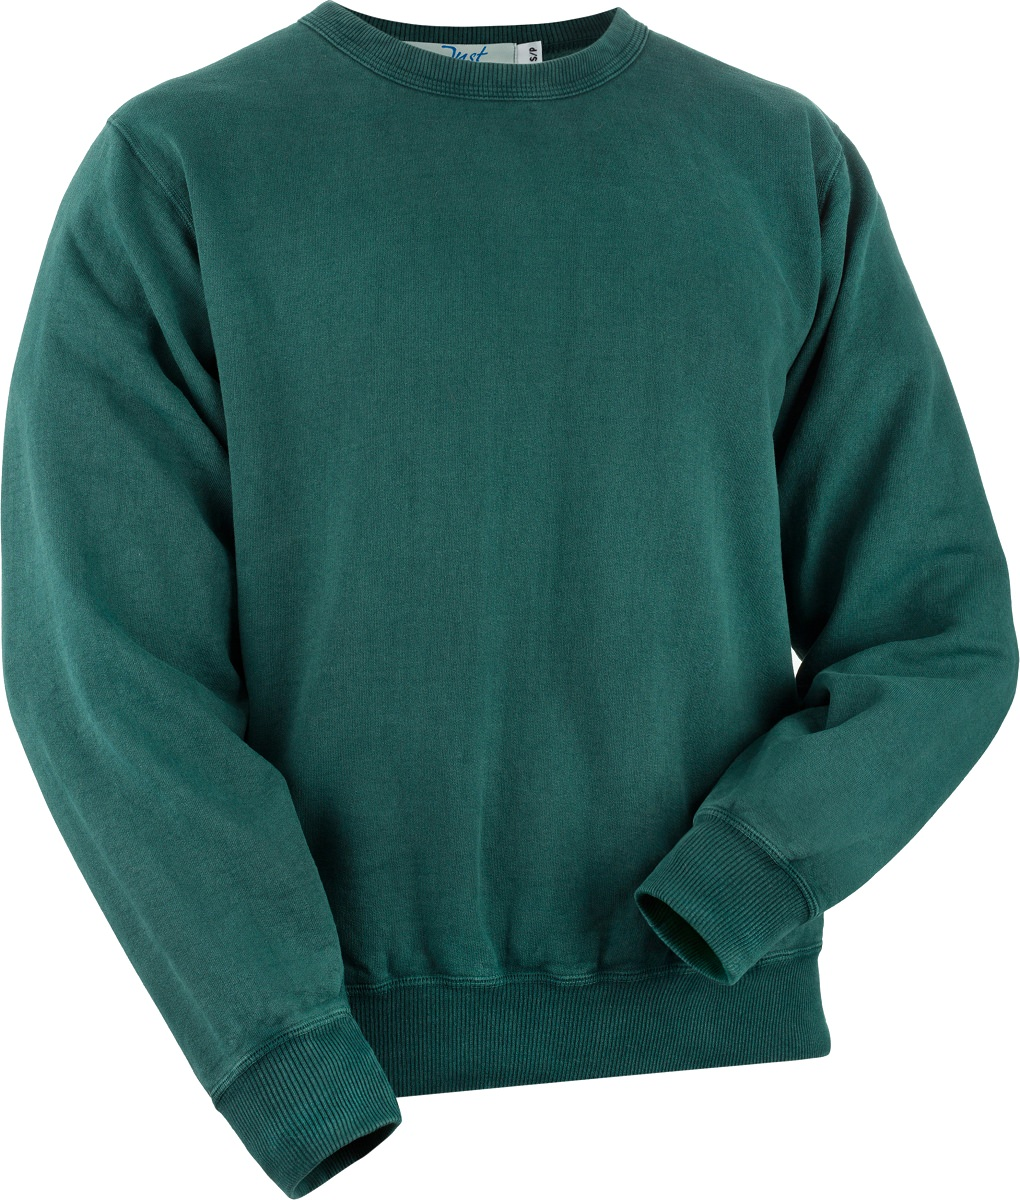 % cotton heavy weight sweatshirts. Hooded pullovers, Zip-ups, 3-Button polos, and crewnecks. Made in Canada. Cotton Sweat Shirts from Just Sweatshirts of Canada.